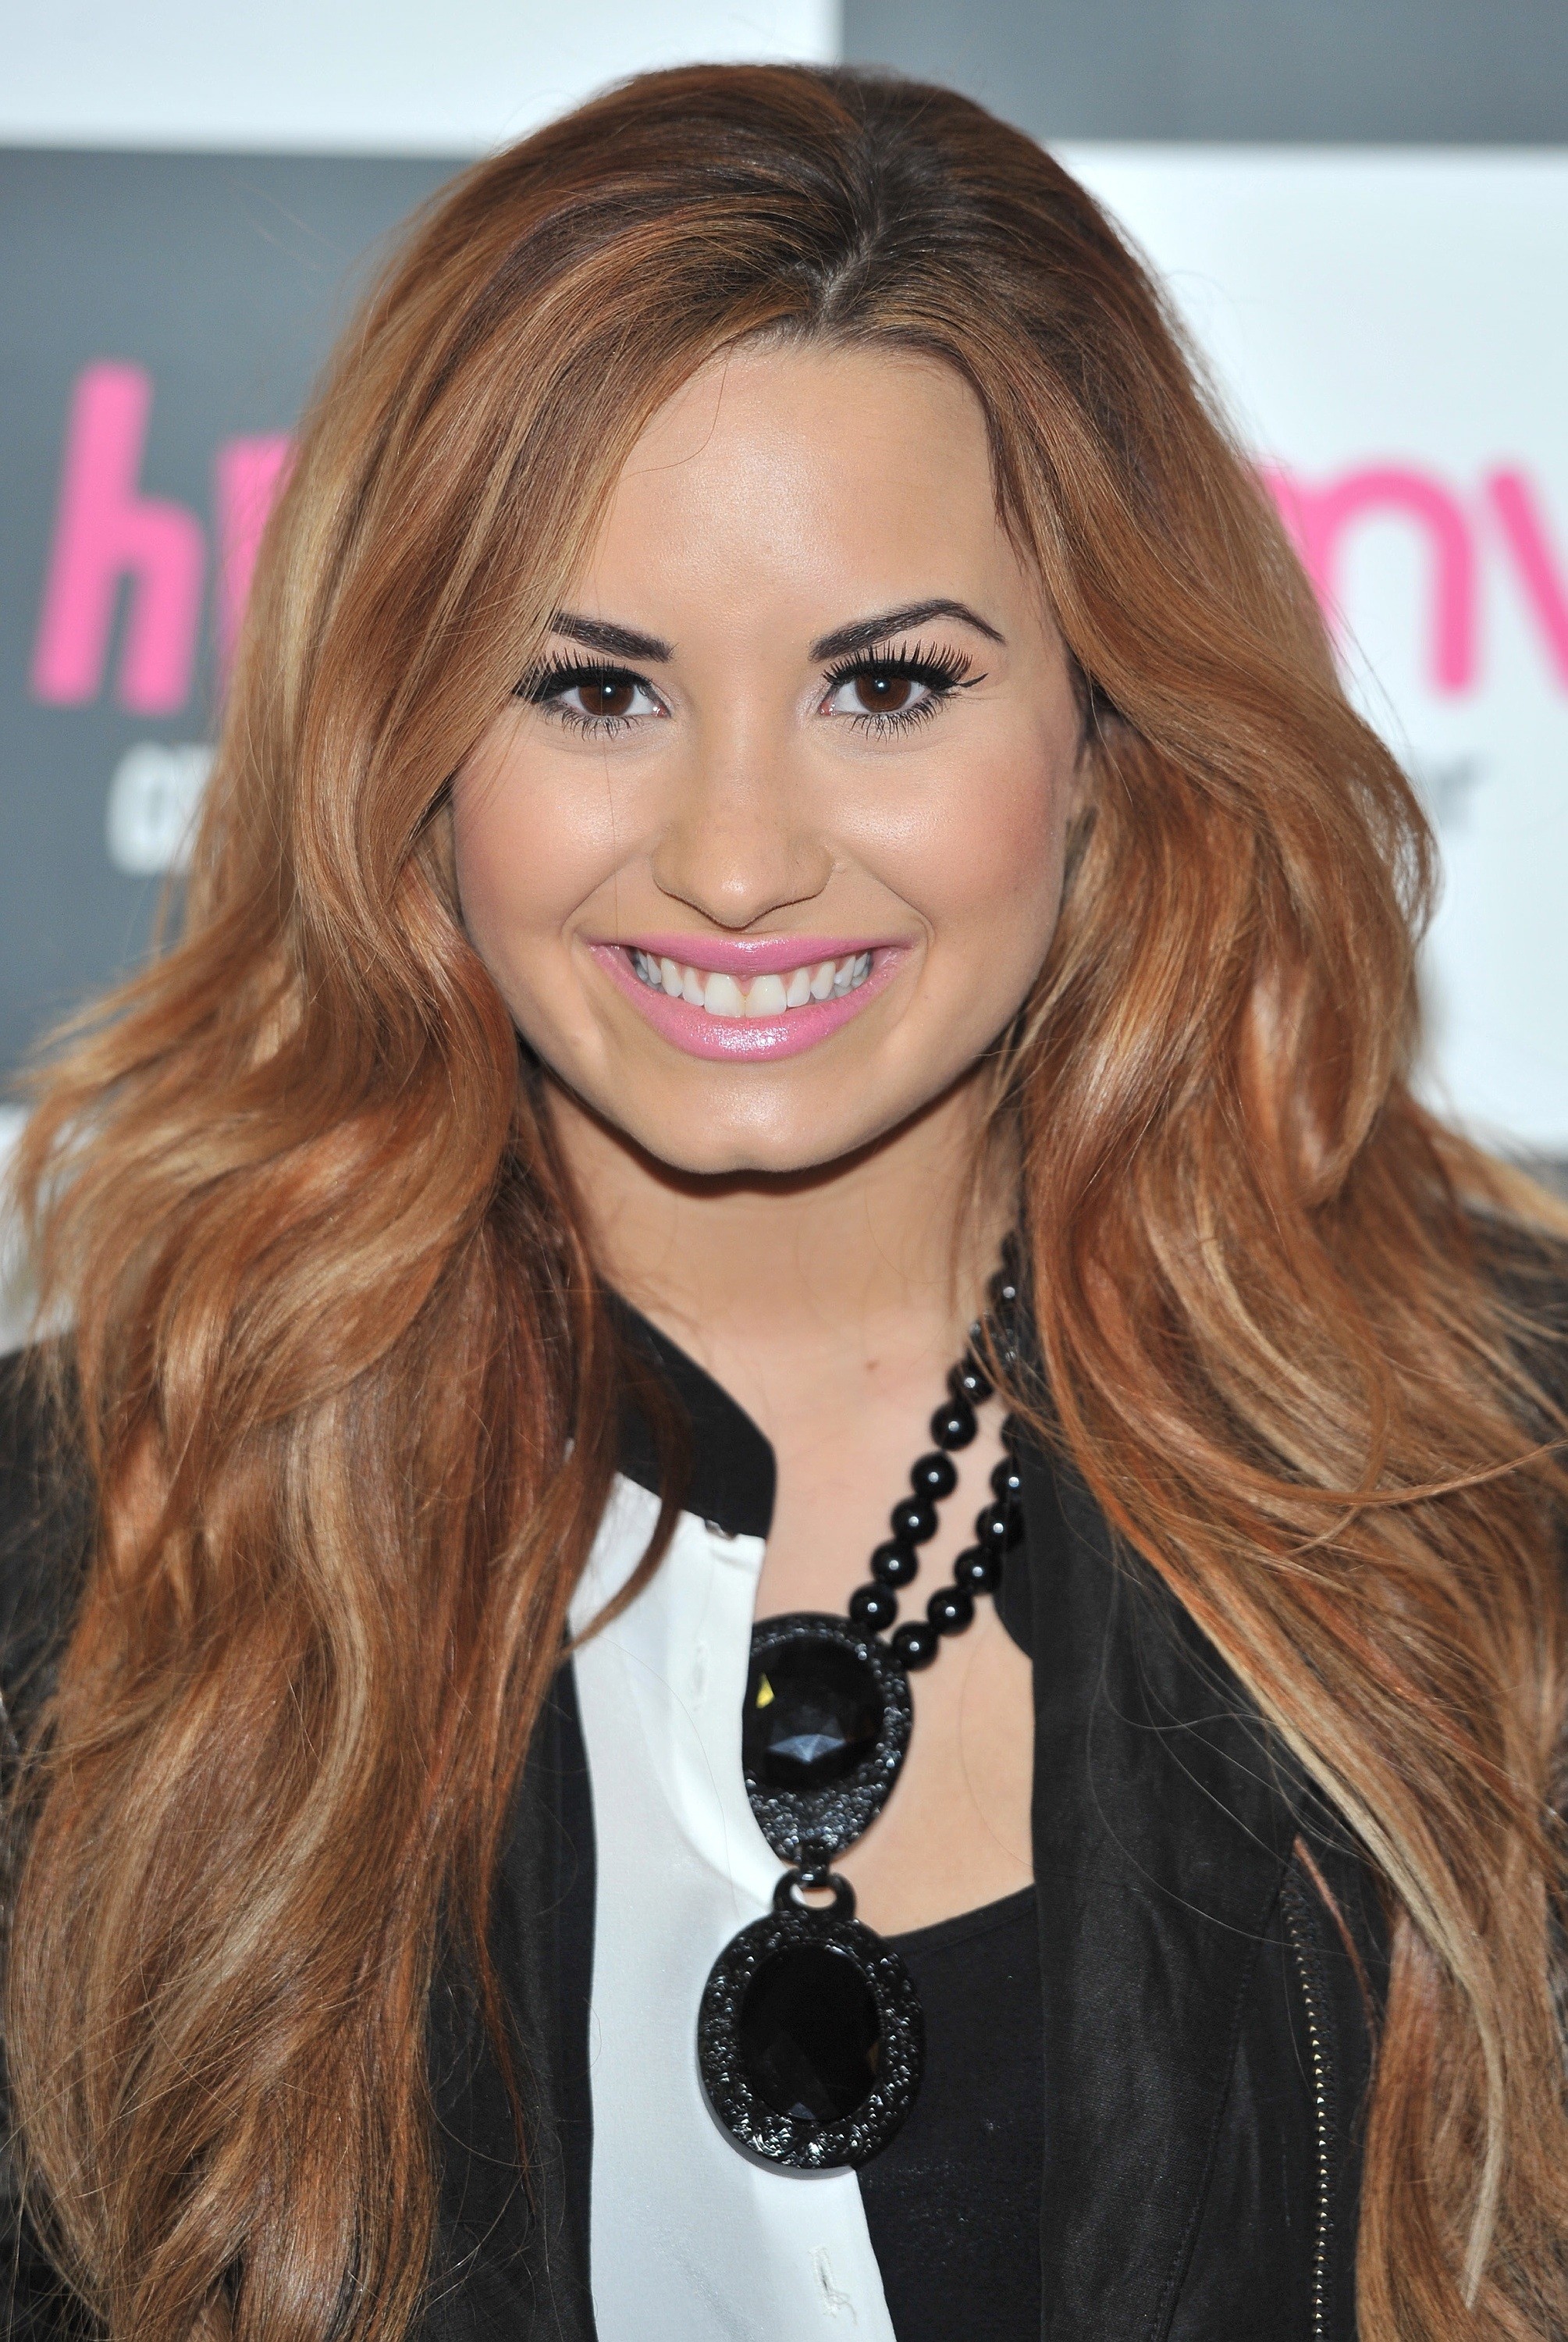 Demi Lovato Sexiest Instagram Pictures: Game Shows Wiki